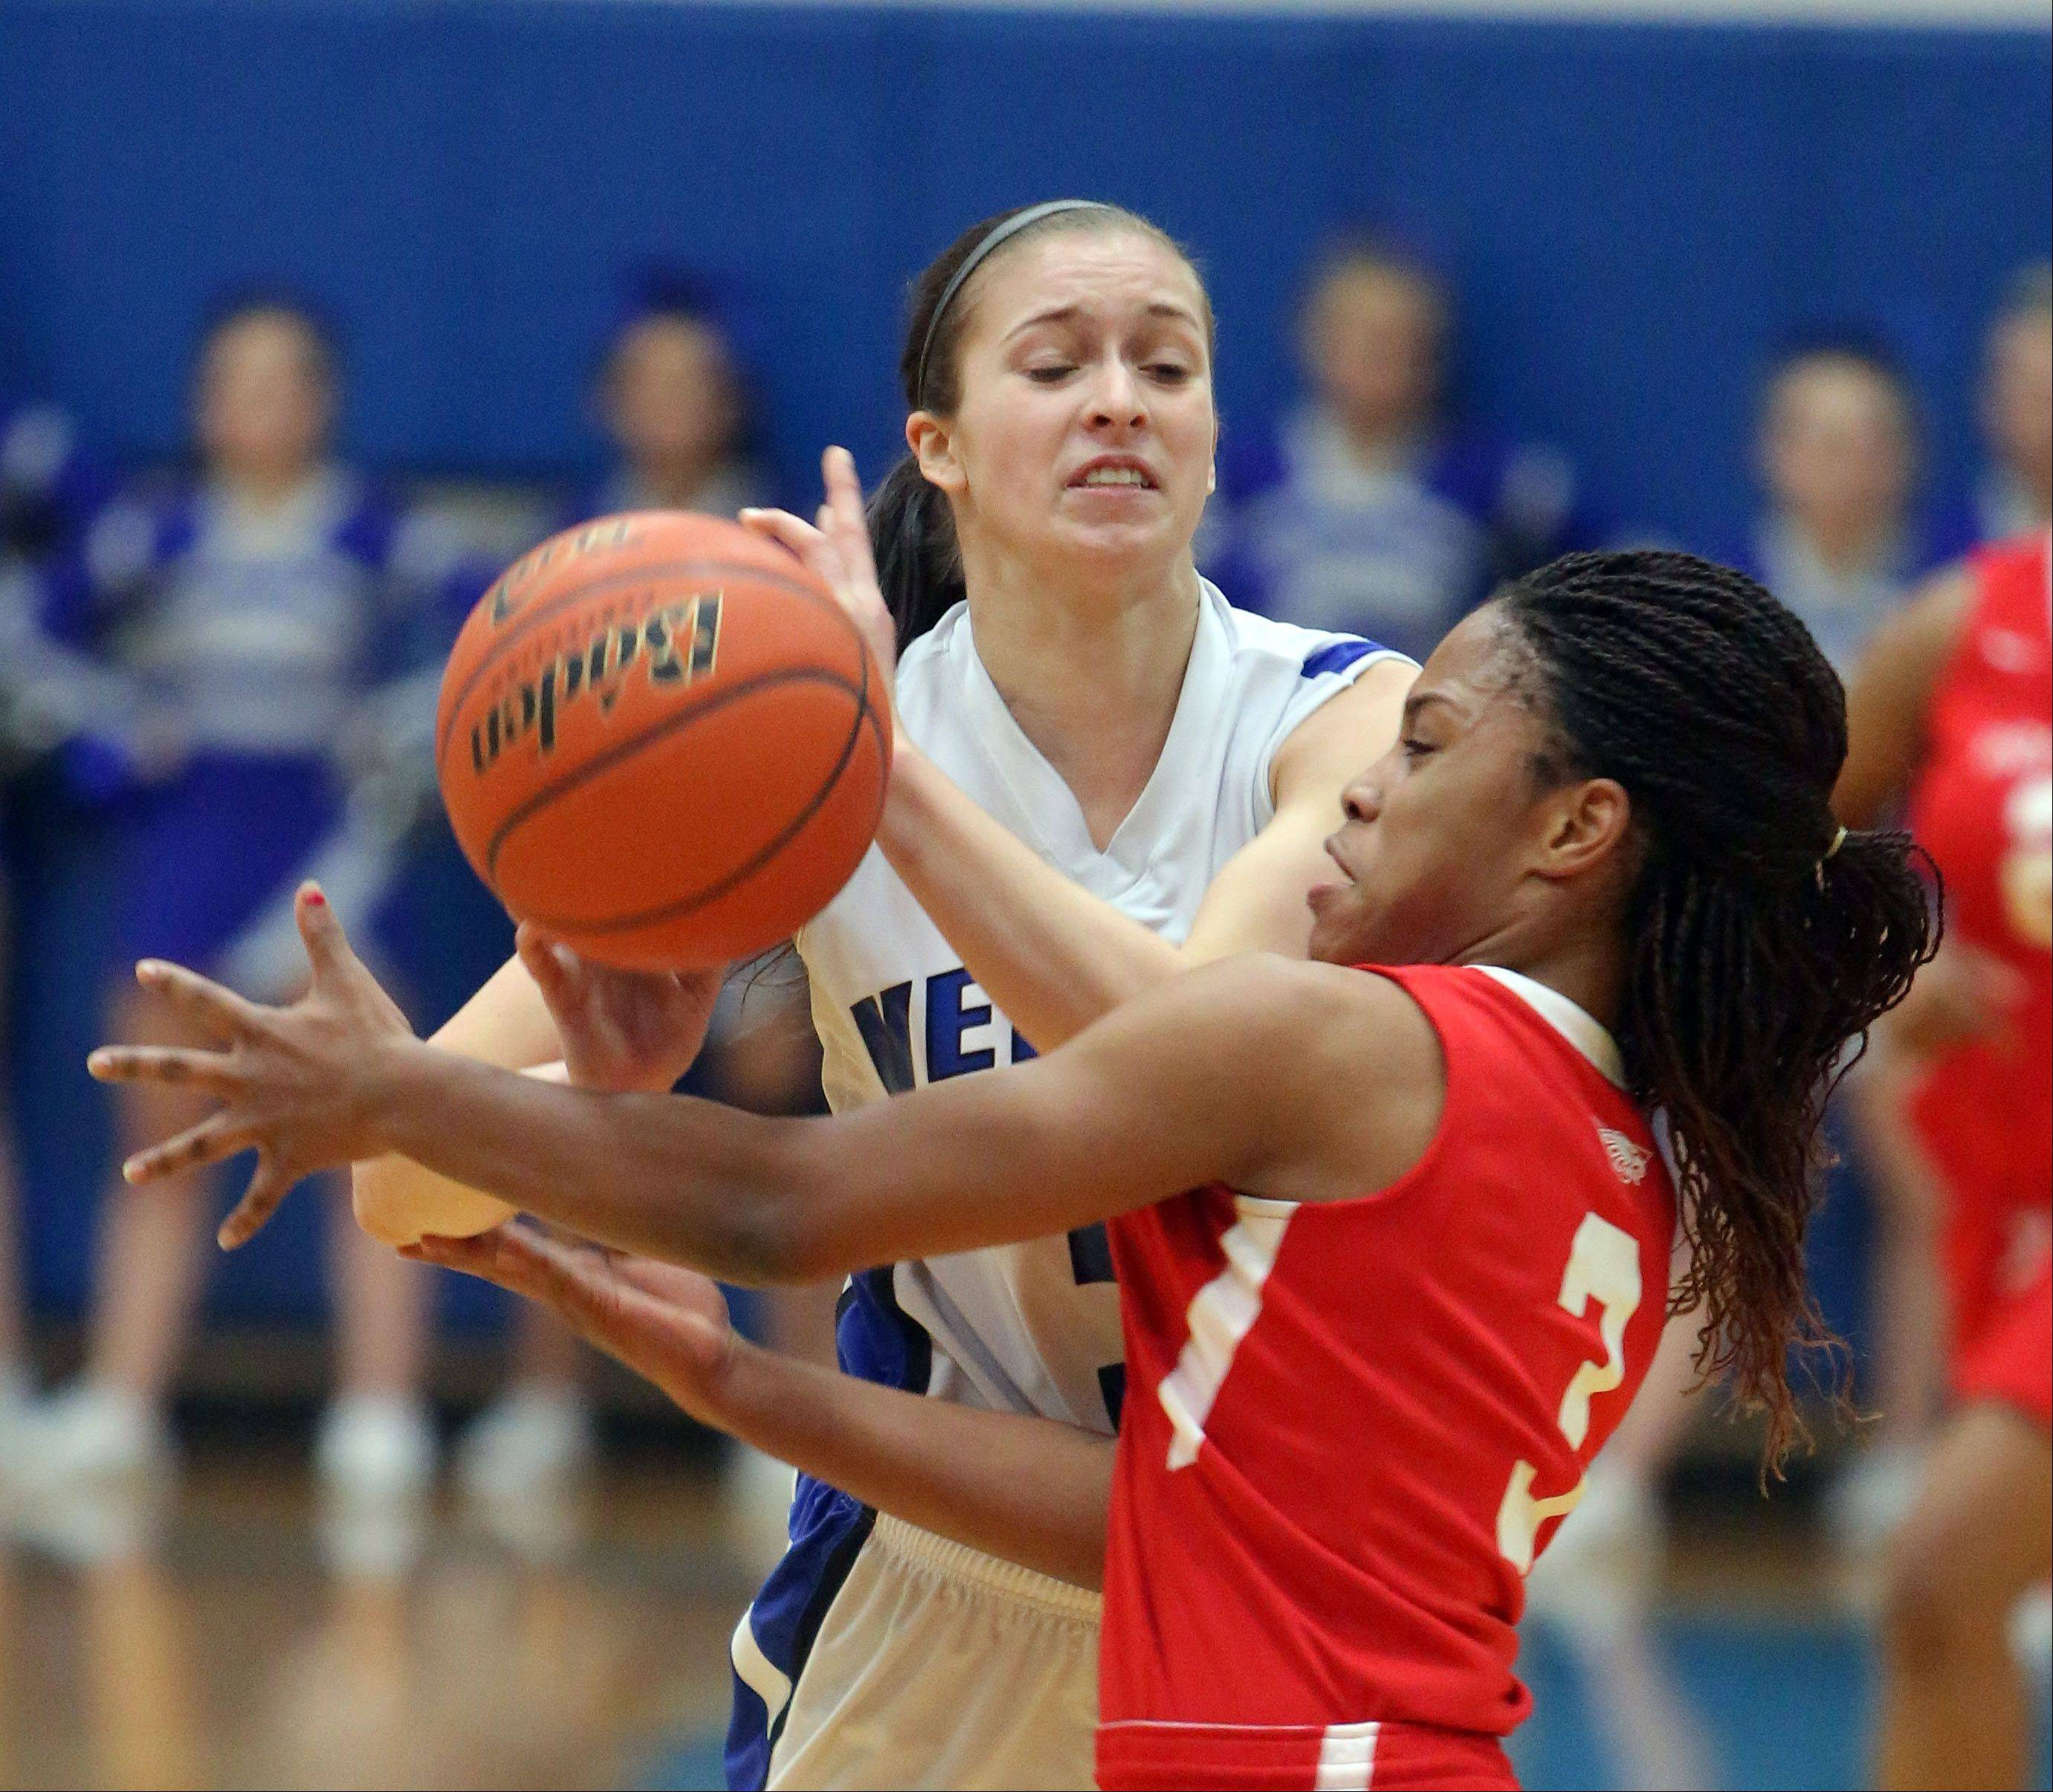 Vernon Hills' Dana Meline, left, and North Chicago's Alexis Means scramble for a loose ball during Wednesday's game in Vernon Hills.